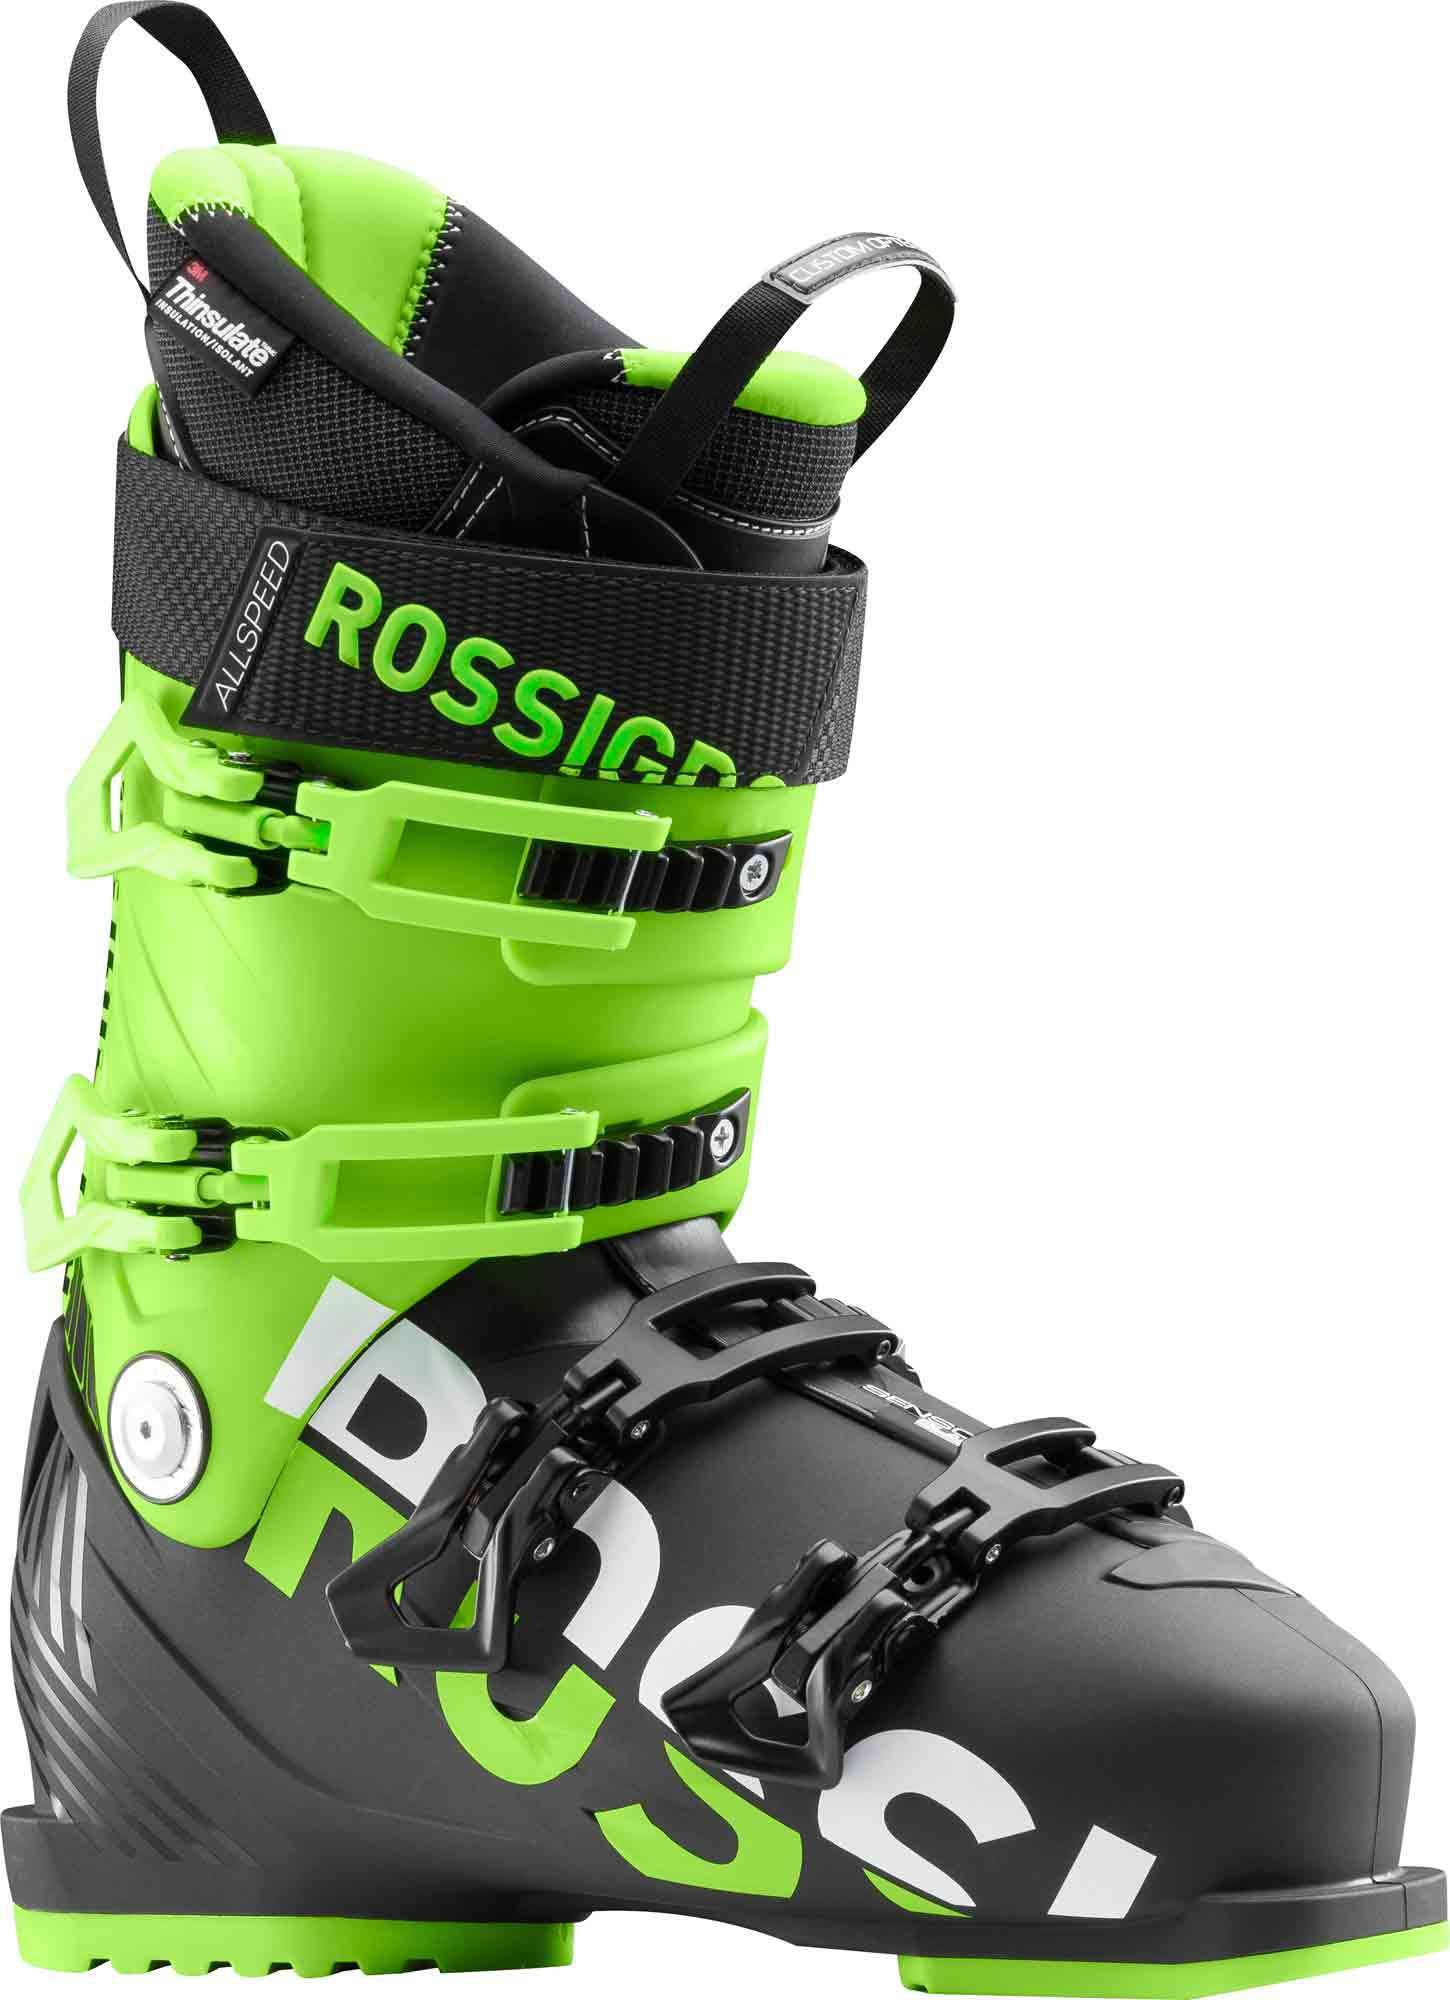 ROSSIGNOL ALL SPEED 100 - 2019